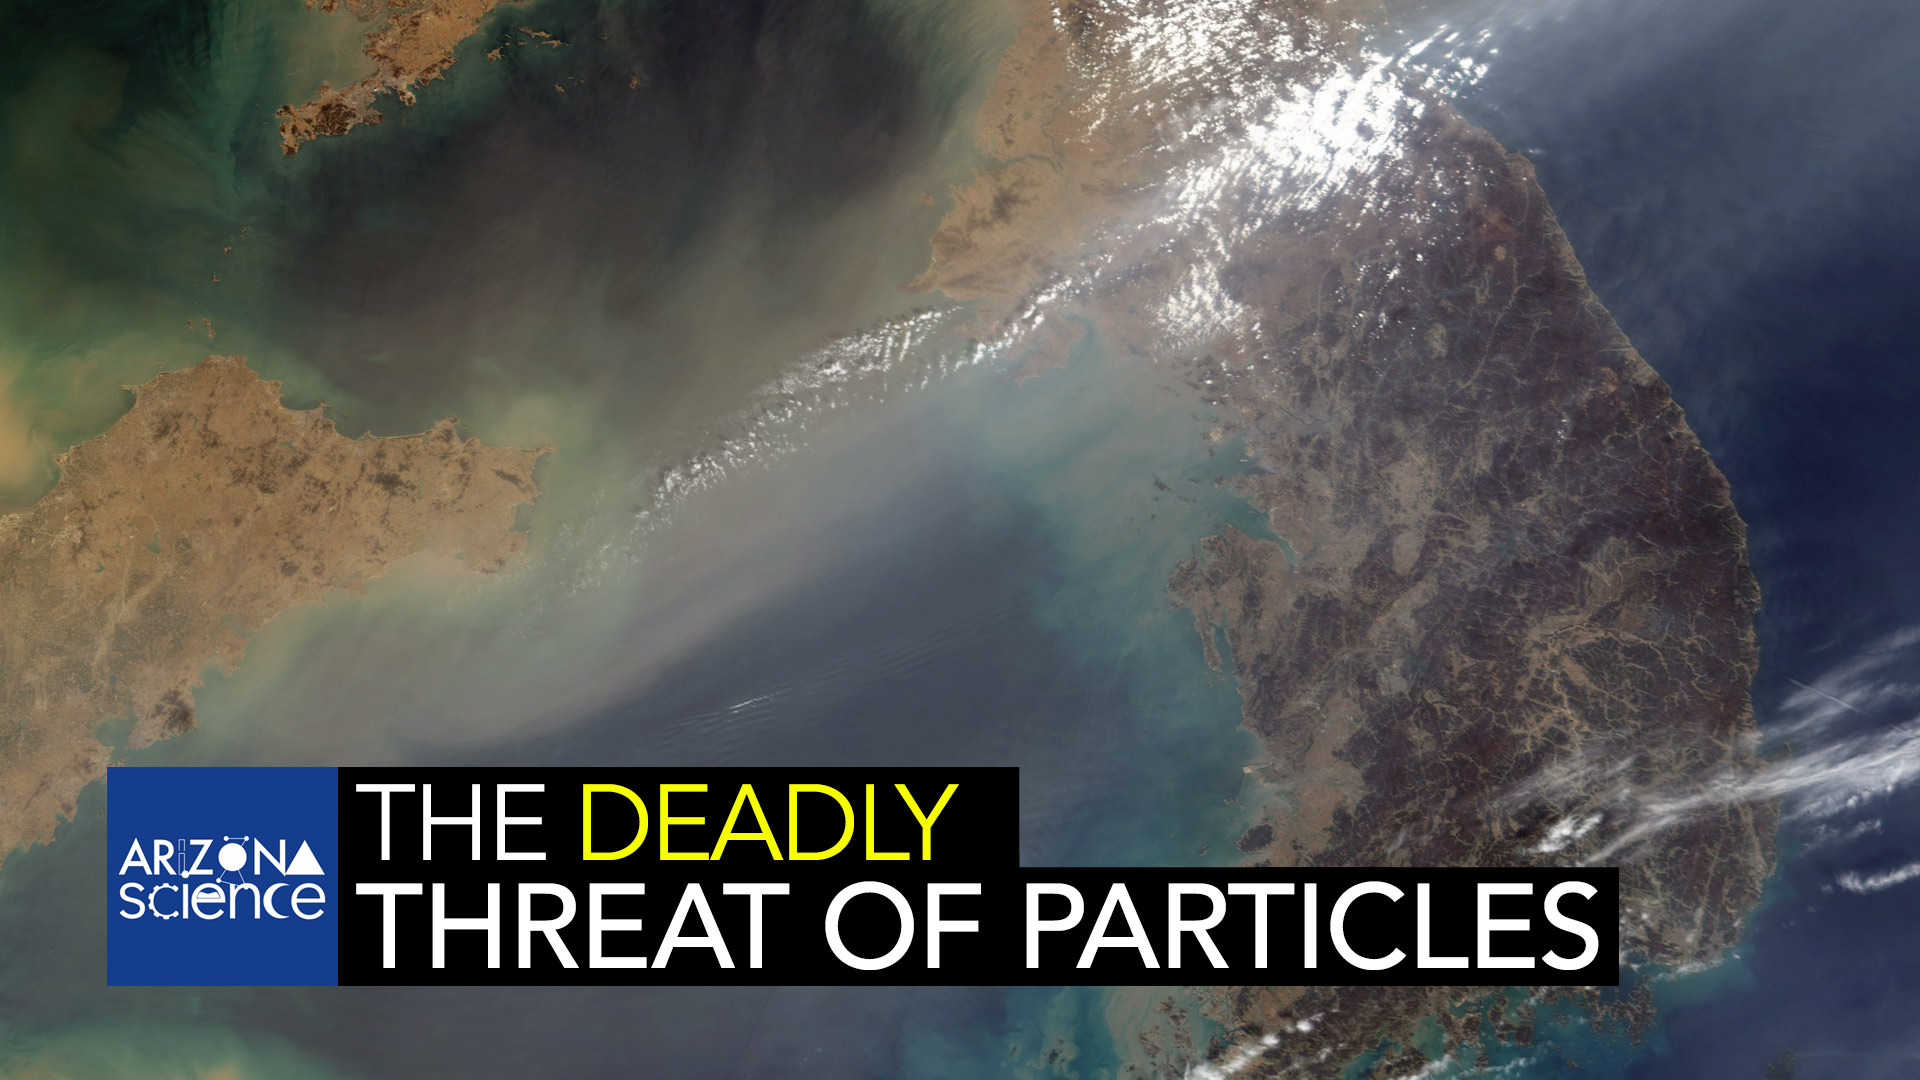 Particles such as those seen on the wind in this image are called aerosols. These small airborne particles can have a huge impact on the environment, threatening a range of things from human health to global climate.